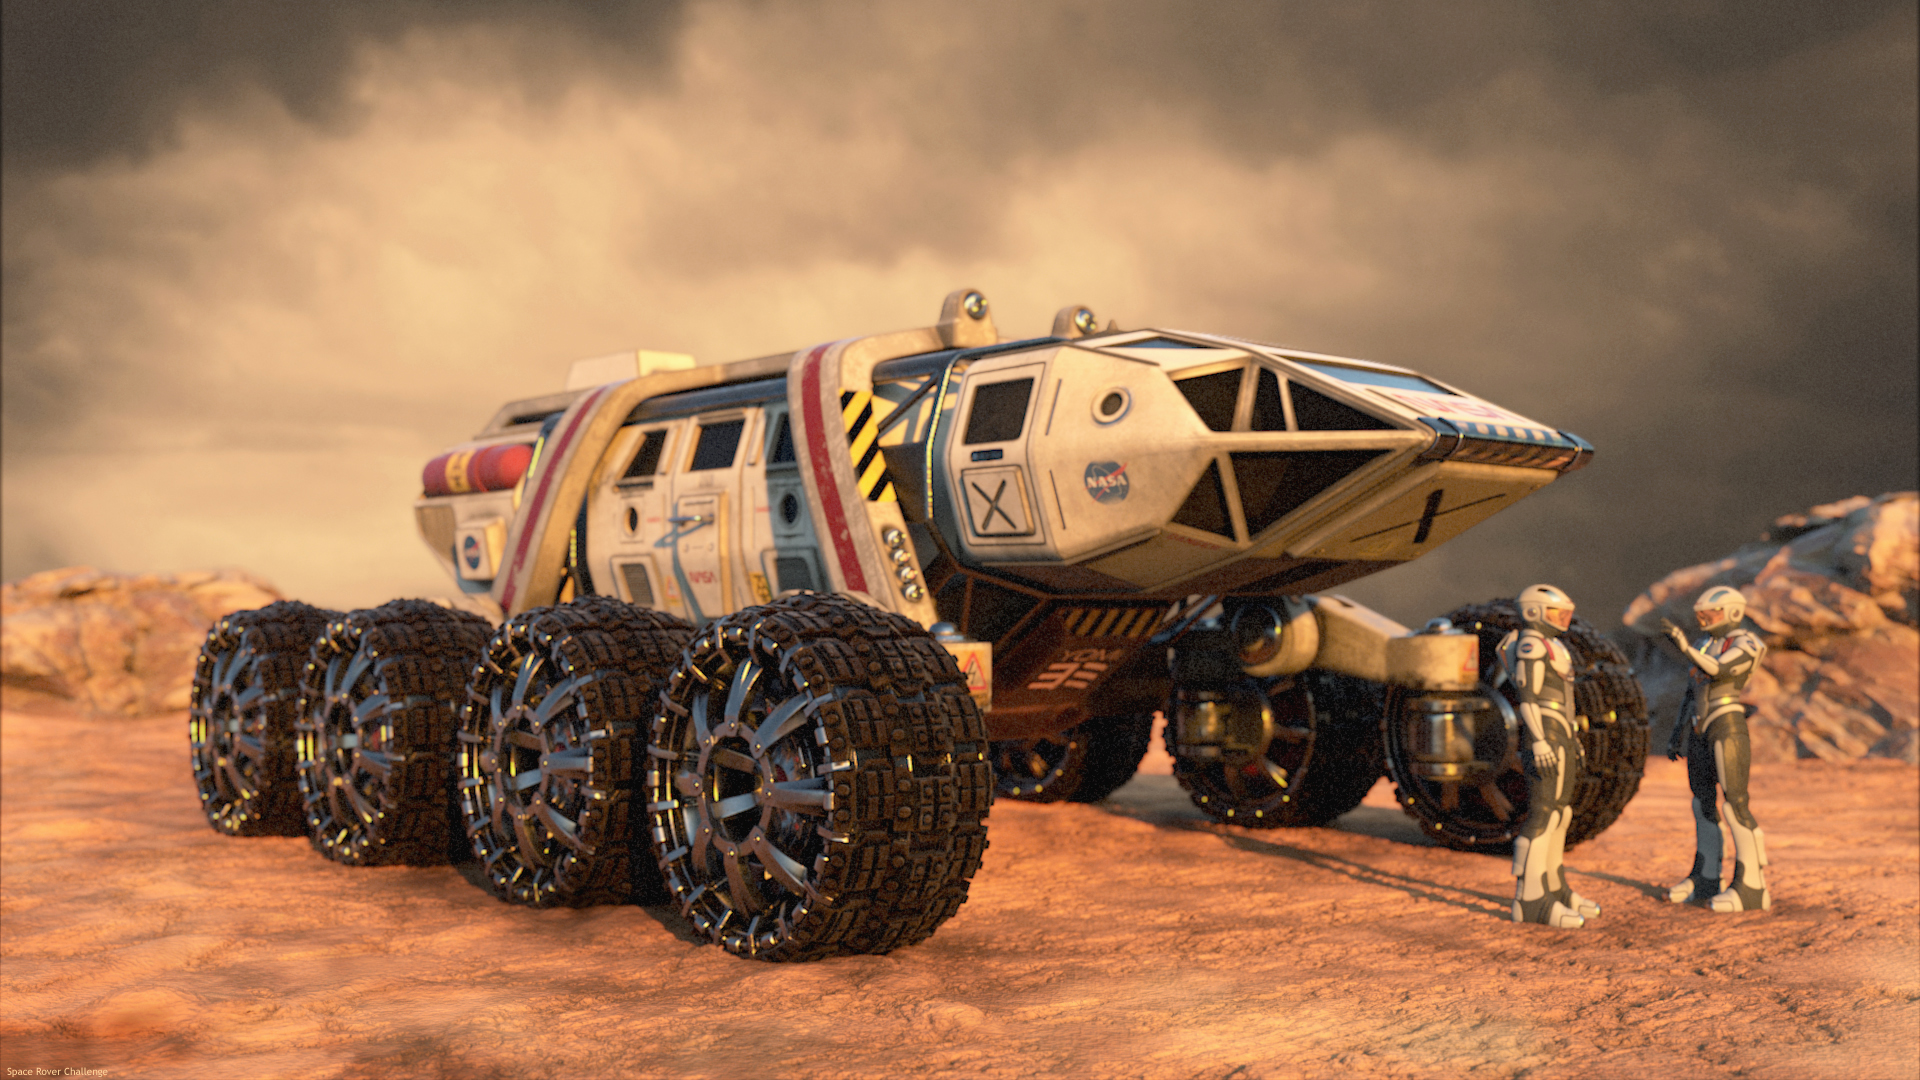 The Frog Space Rover 3d art